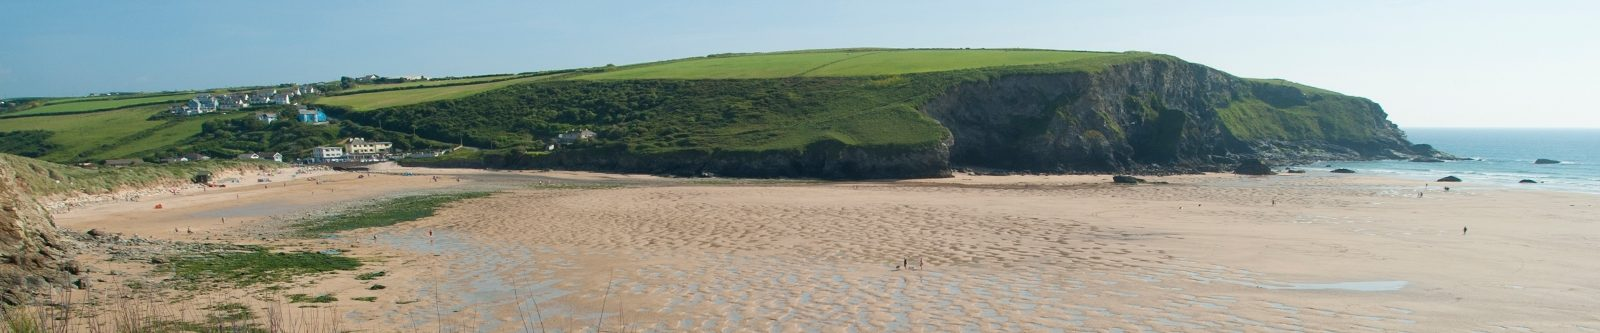 headland at Mawgan Porth